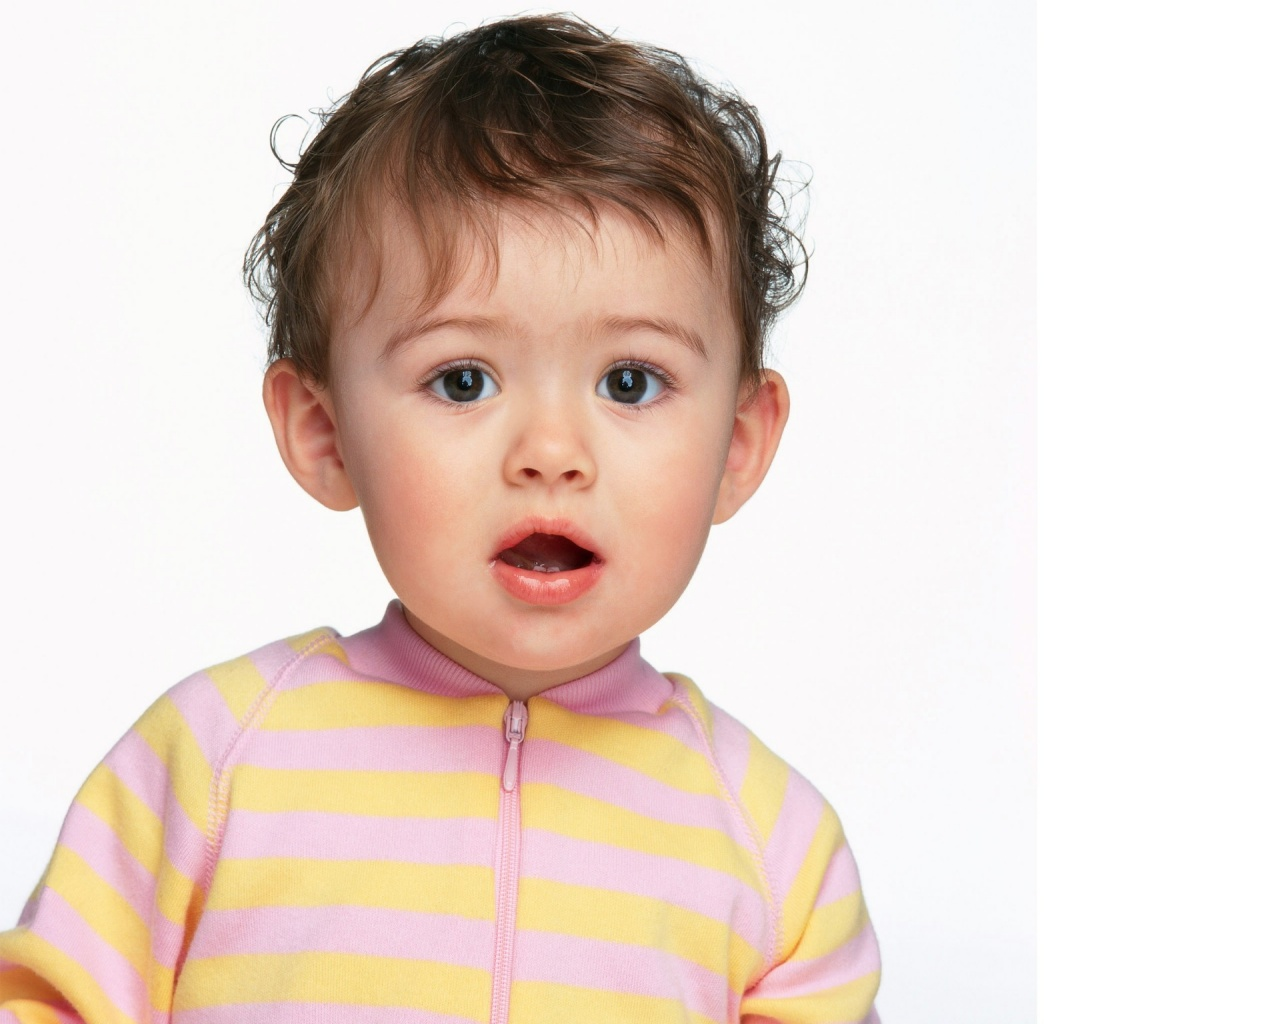 Cute Little Babies HQ (6) Wallpapers in jpg format for free download